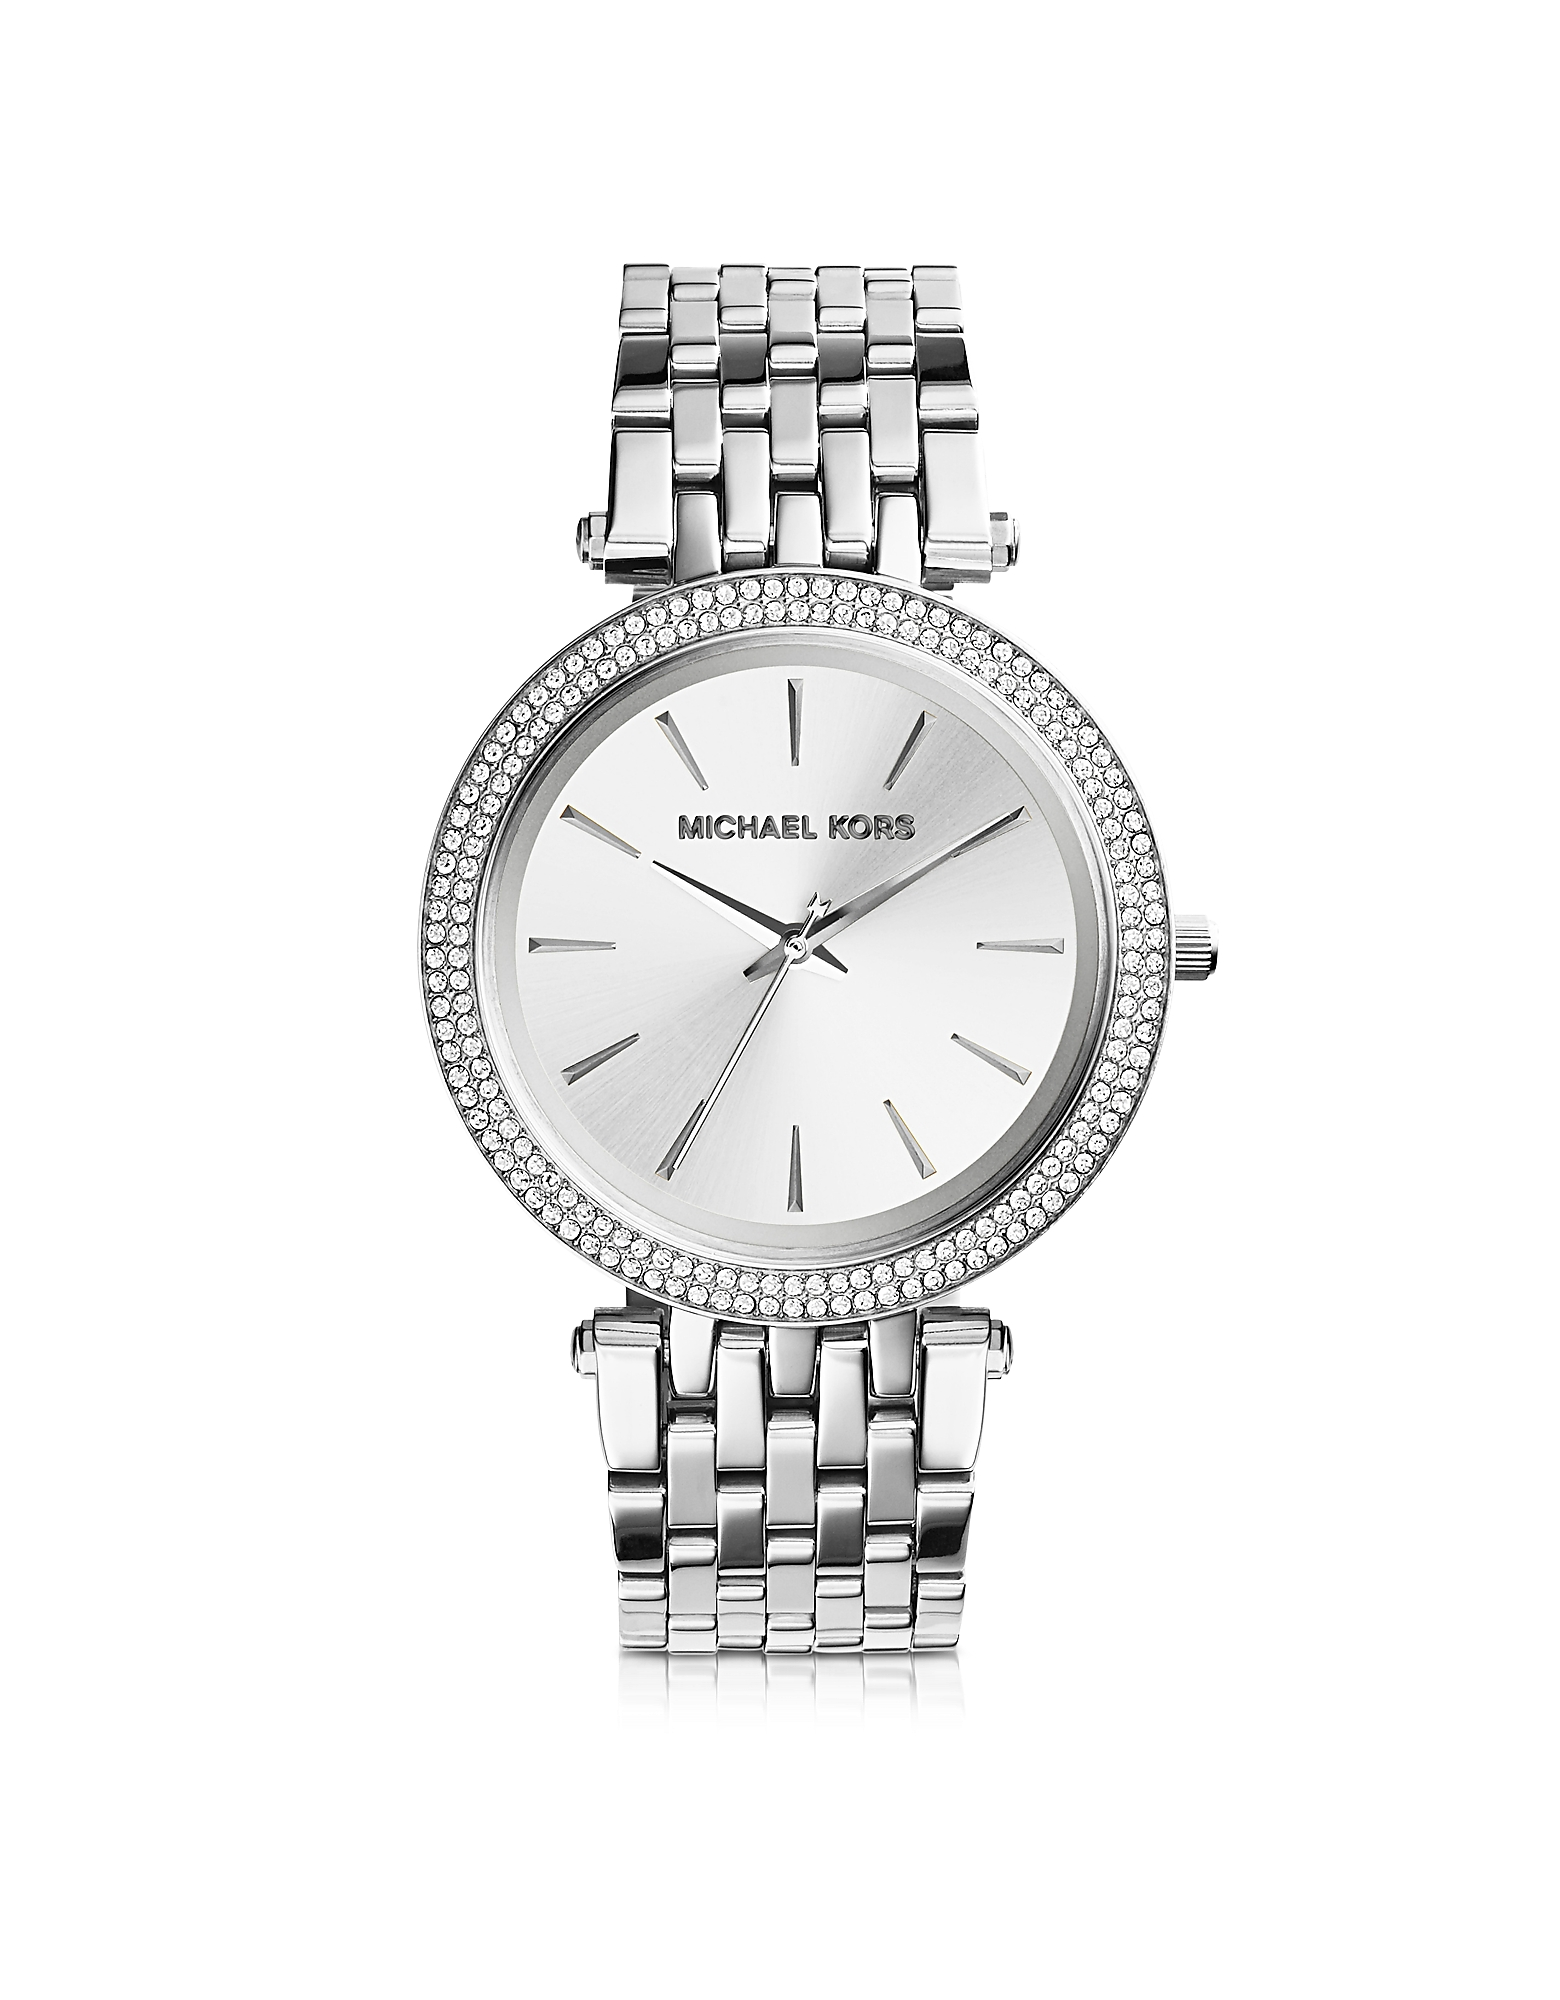 Michael Kors Women's Watches, Darci Stainless Steel Women's Watch